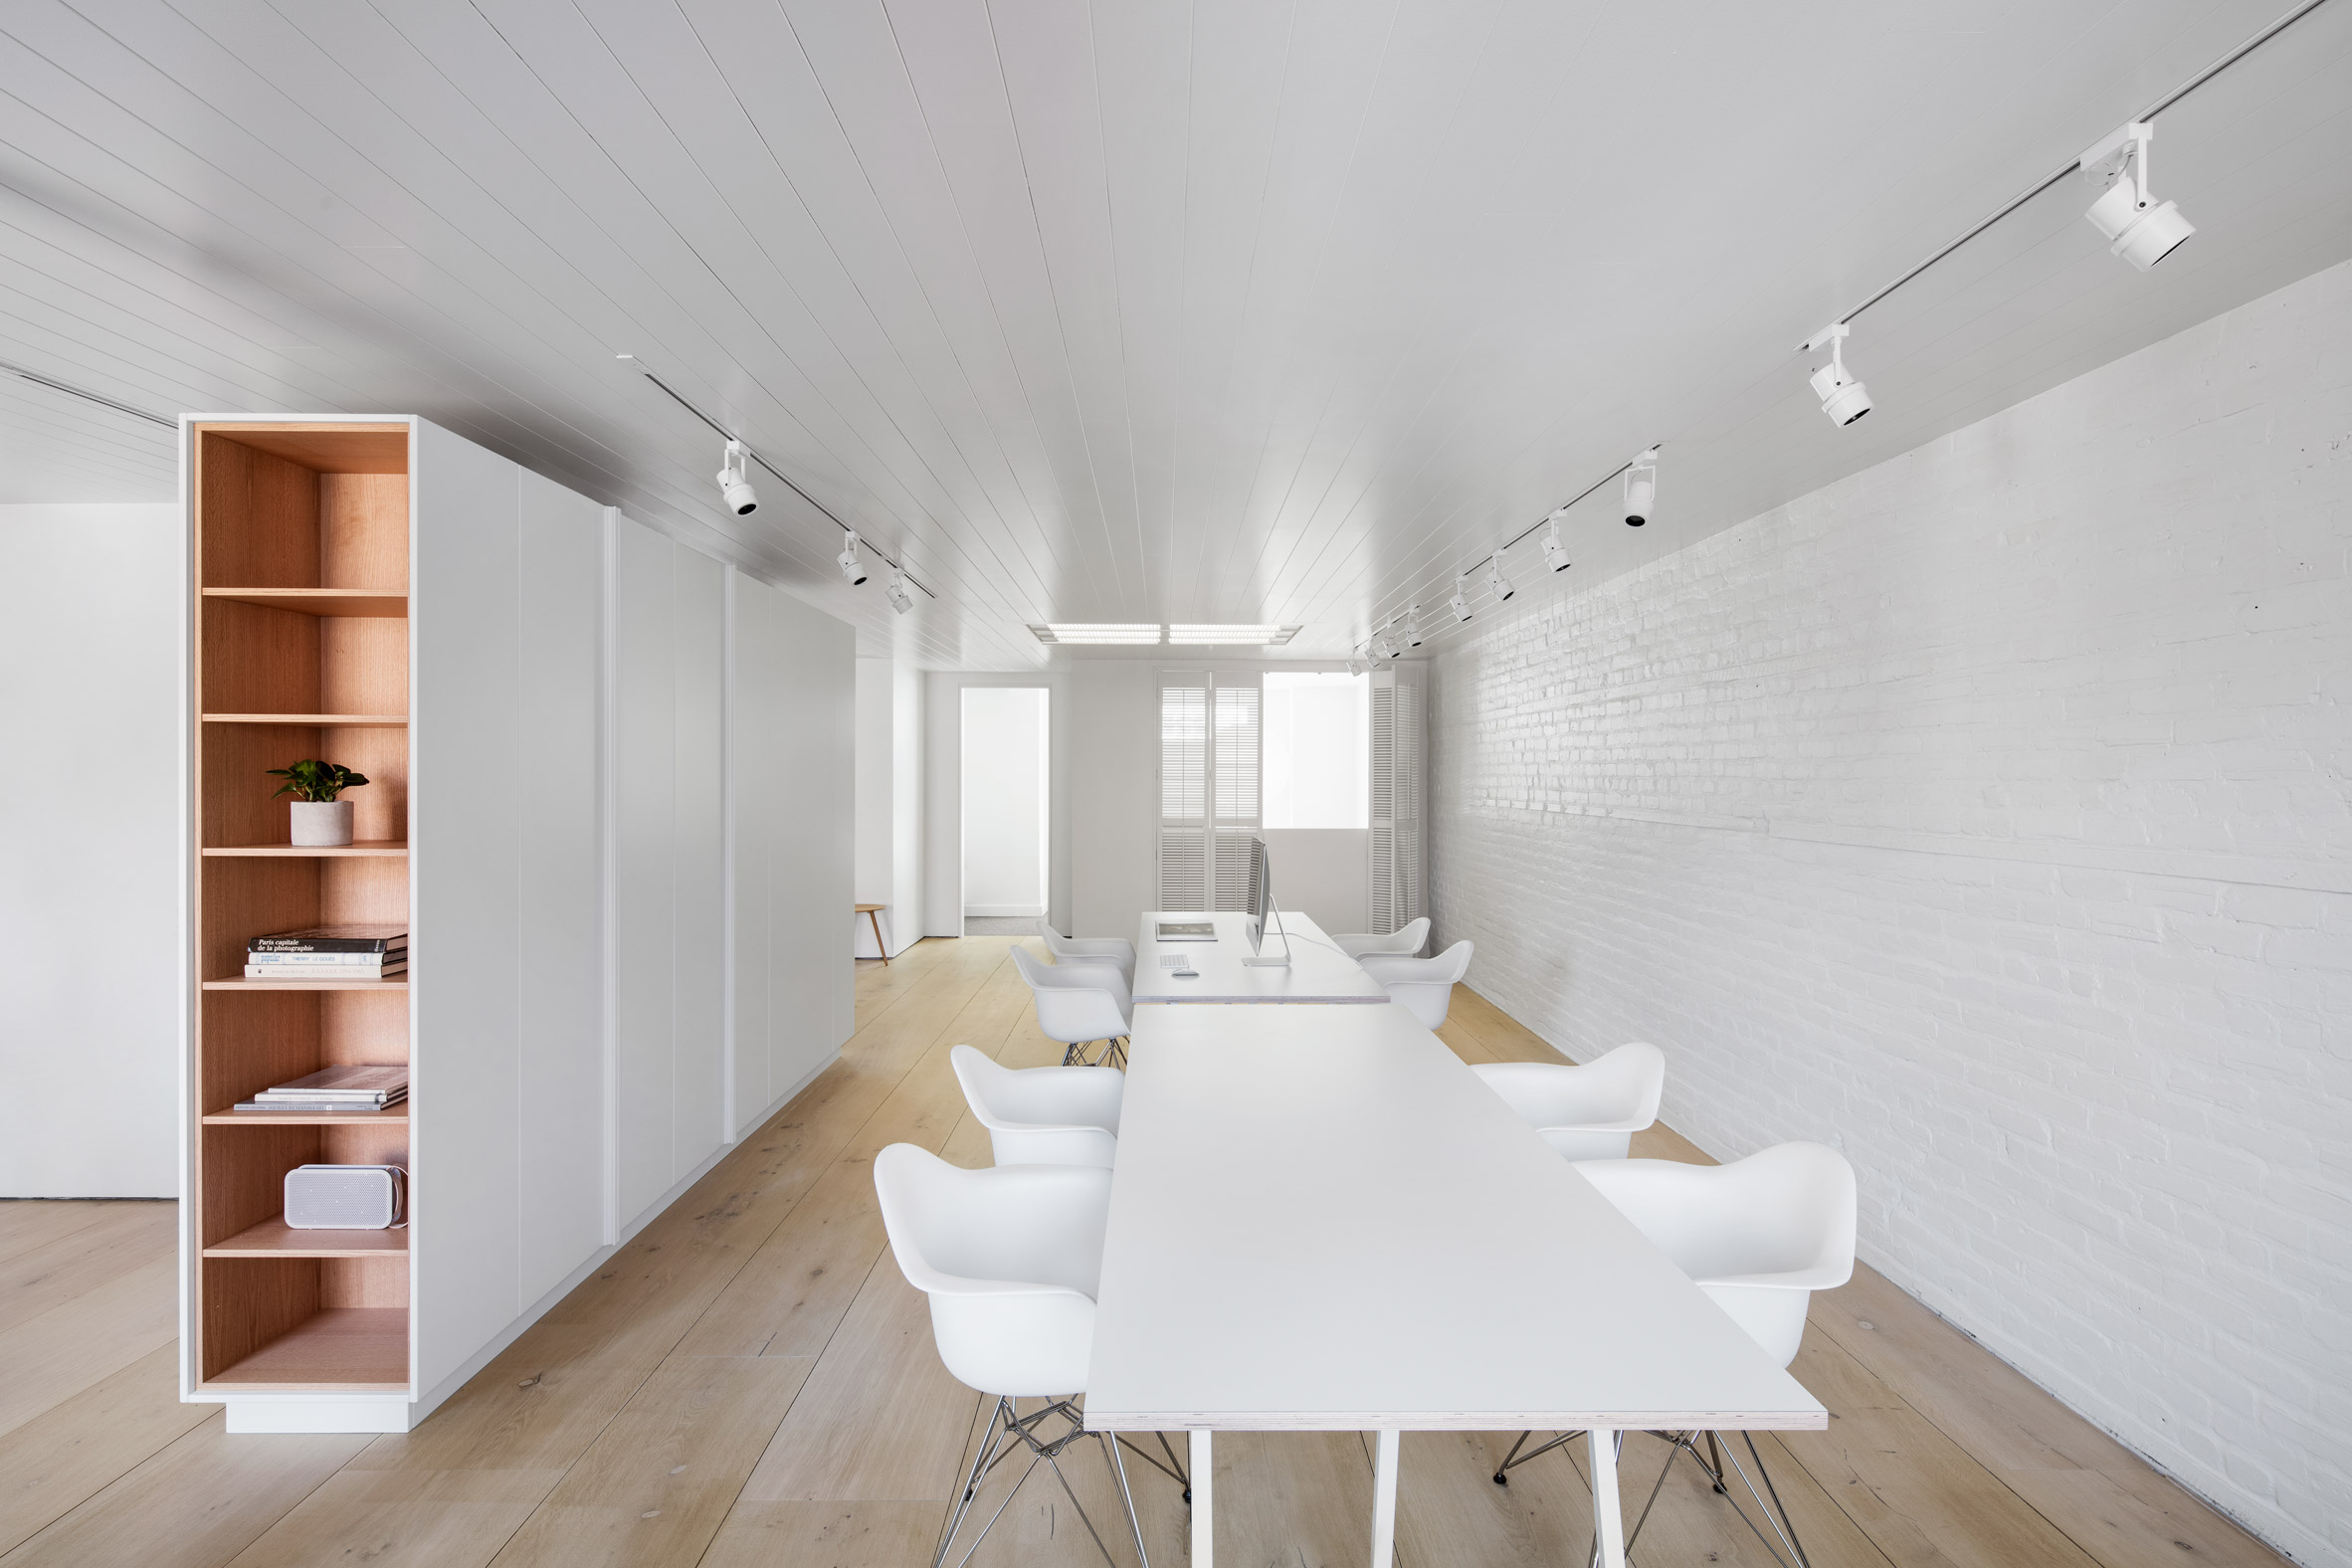 Studio Minimal minimal photography studio in montreal has plenty of children's play